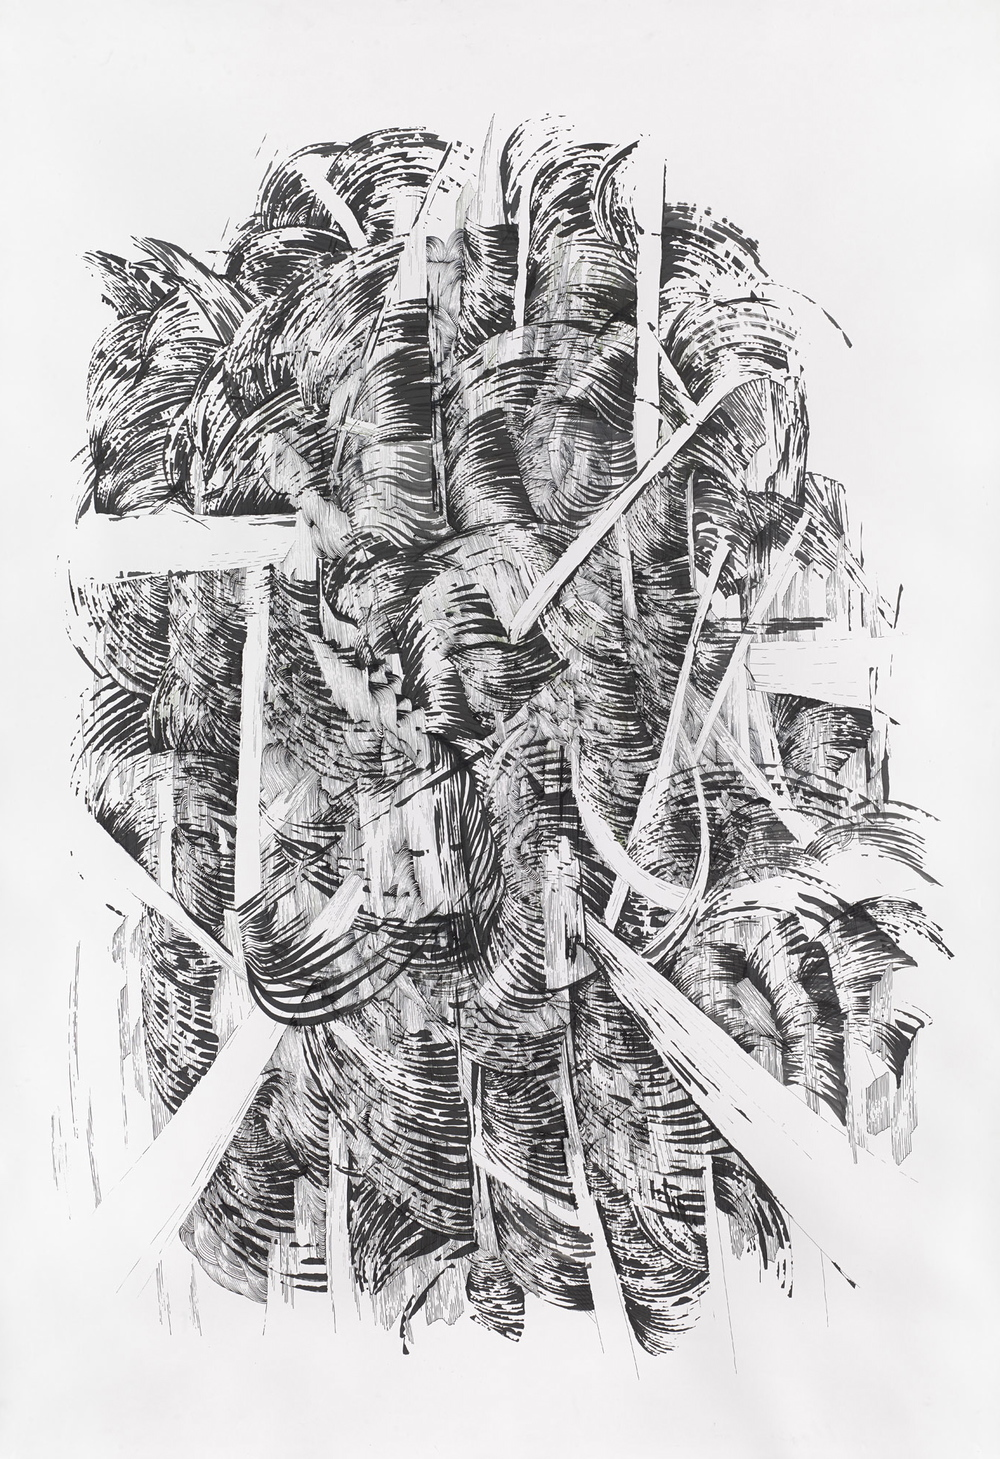 BK P164 1   untitled   ink on paper   200x150cm   2014   private collection stuttgart